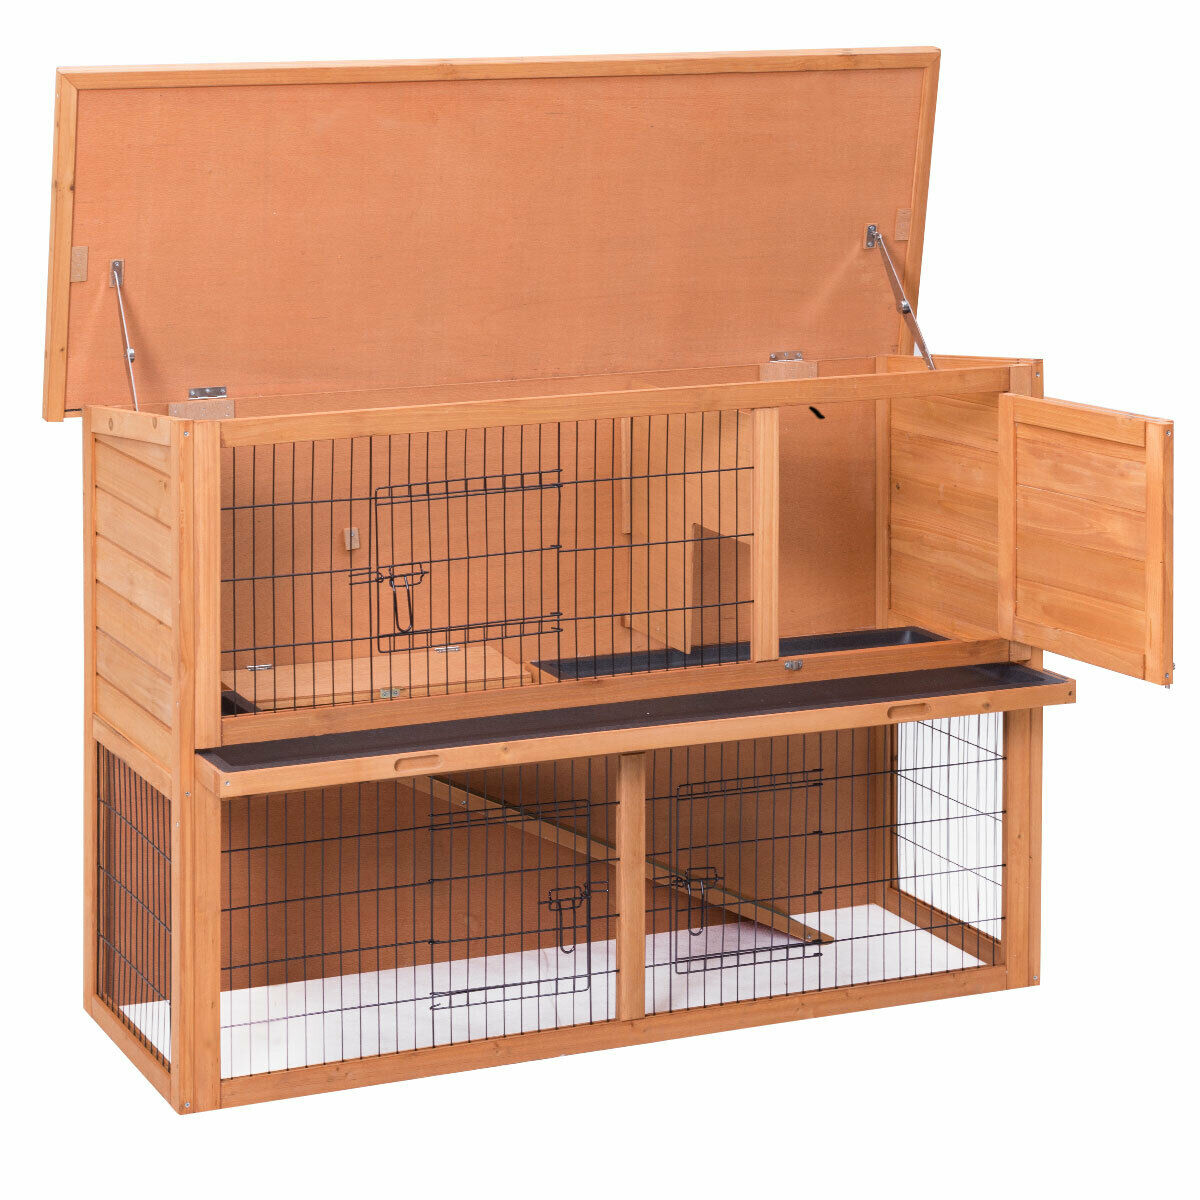 Gymax Large Chicken Coop Rabbit Hutch Garden Backyard Wood Hen House Poultry Cage - image 7 of 10